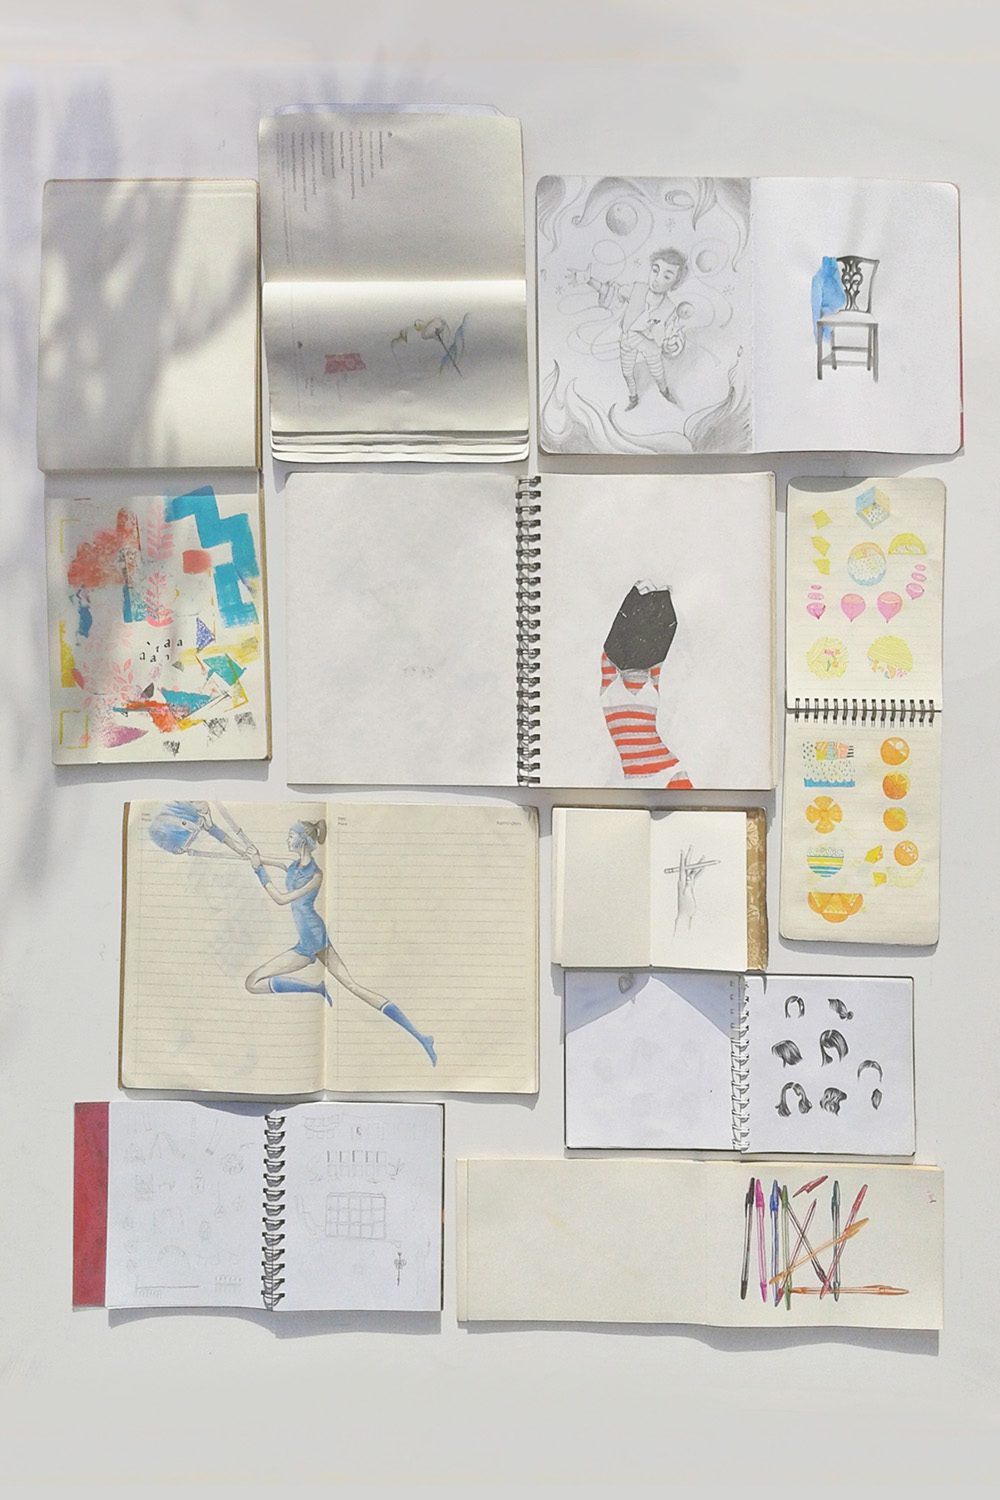 """Sketchbooks""  by Angela Taguiang"